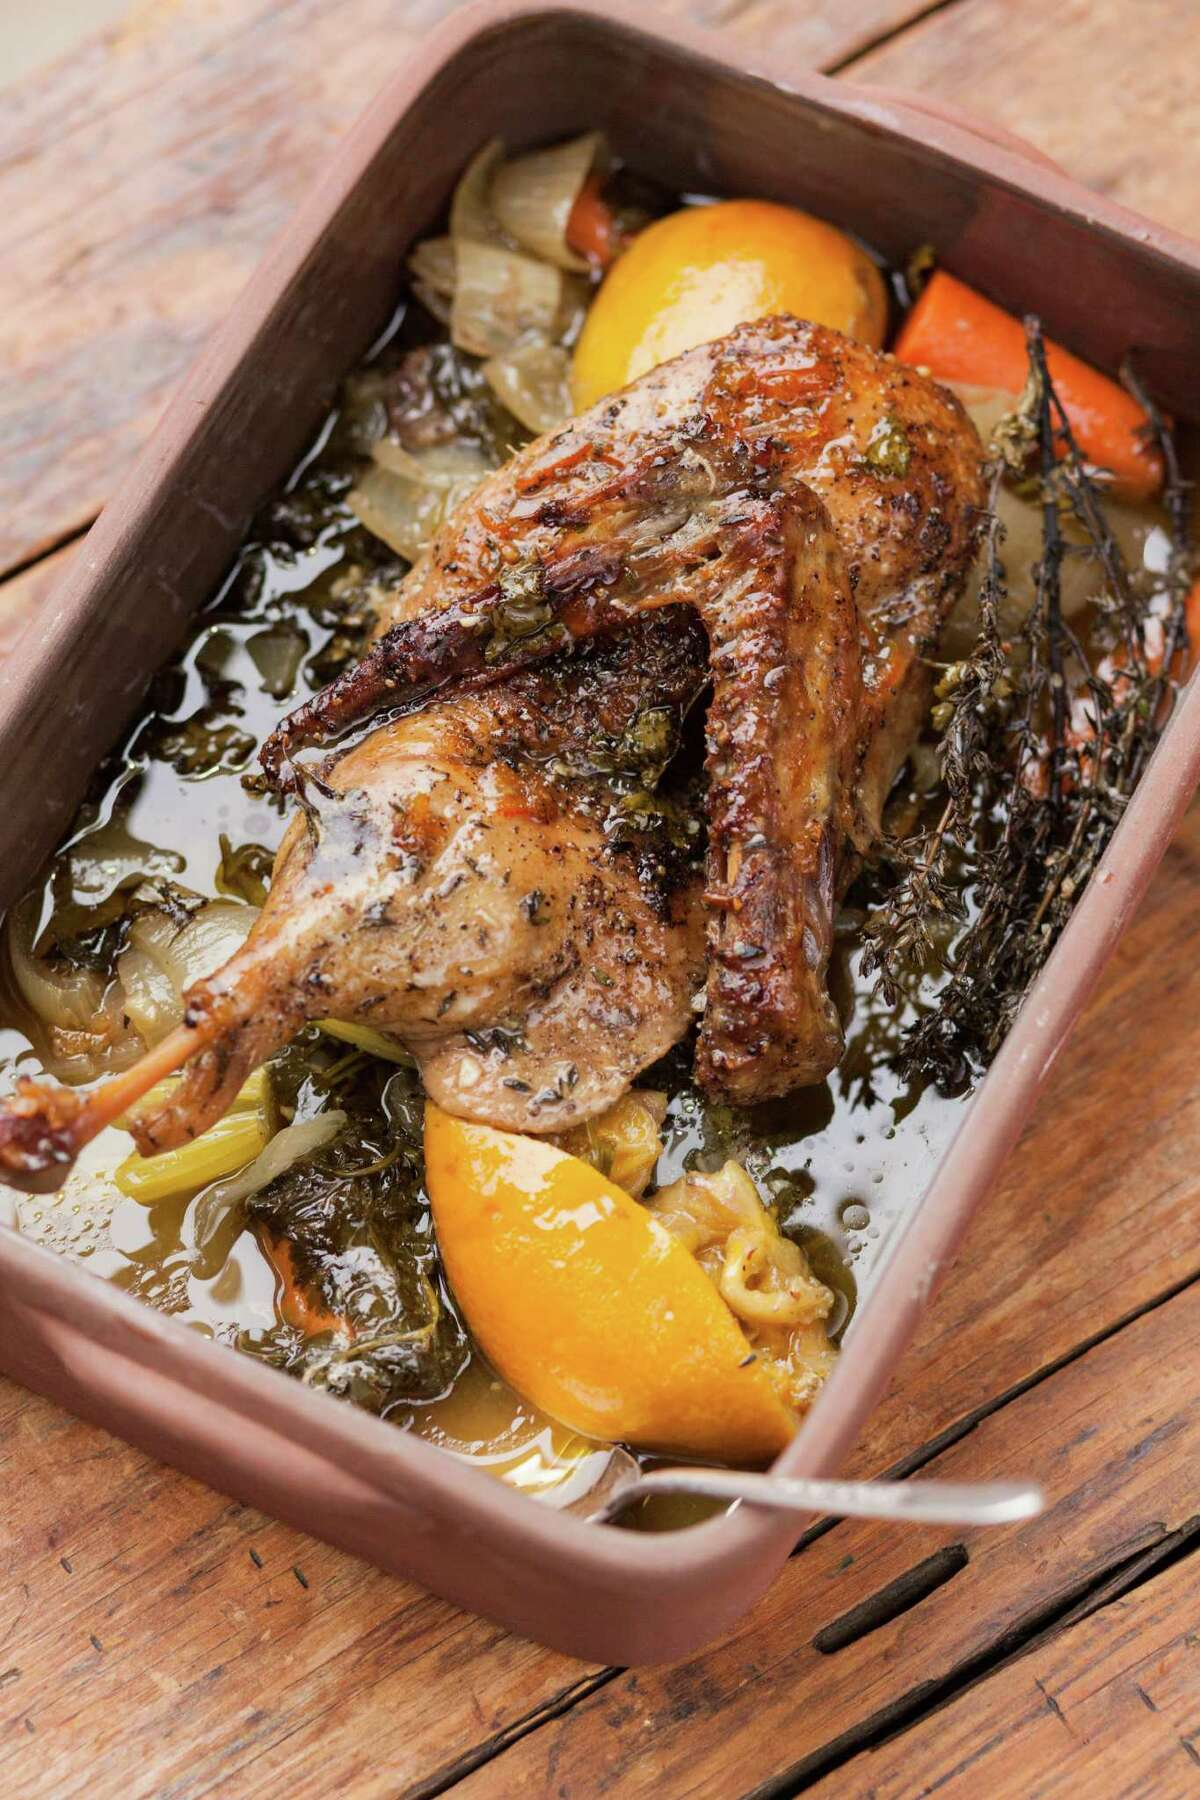 A deep pan is used to cook the duck with onions, carrots, celery, citrus, herbs and wine, allowing it to cook with all of the juices.